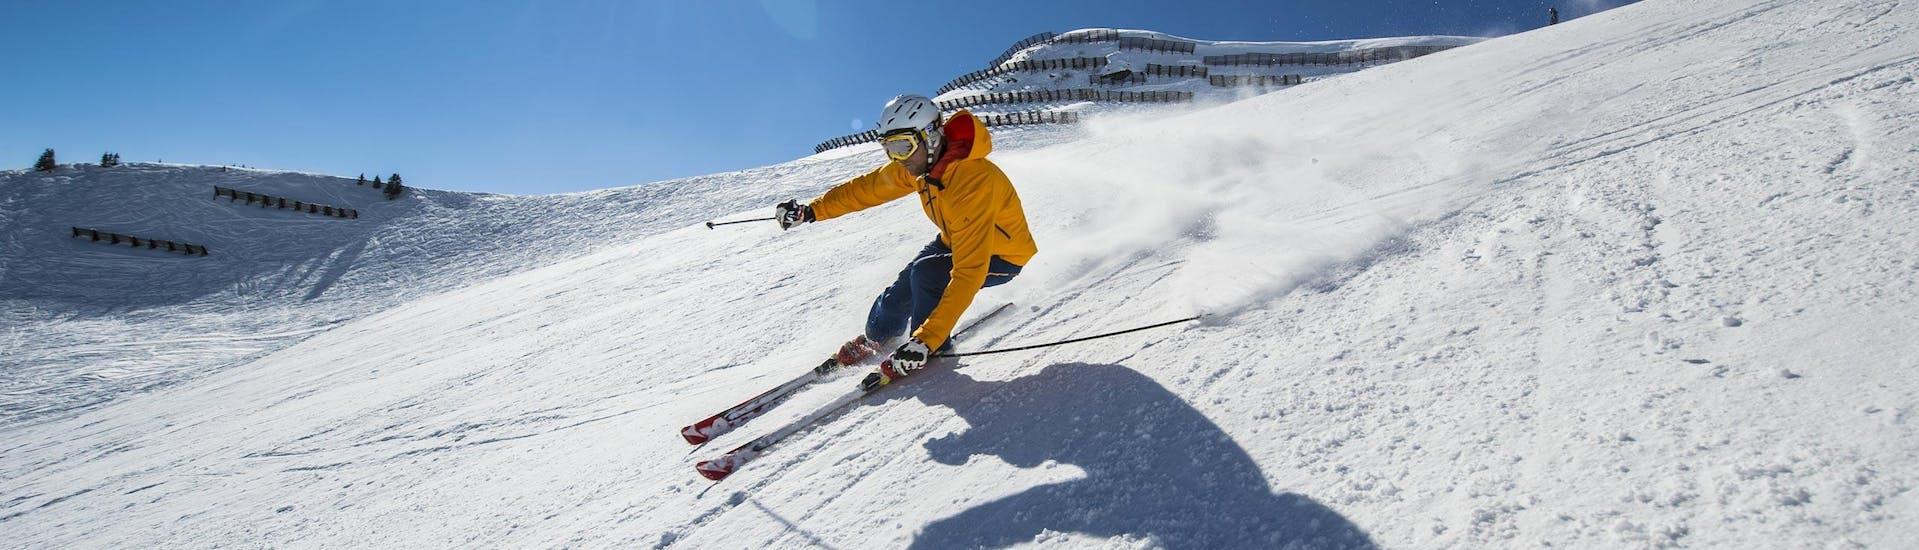 Private Ski Lessons for Adults - All Levels: A skier is skiing down a sunny ski slope while participating in an activity offered by Skibex.